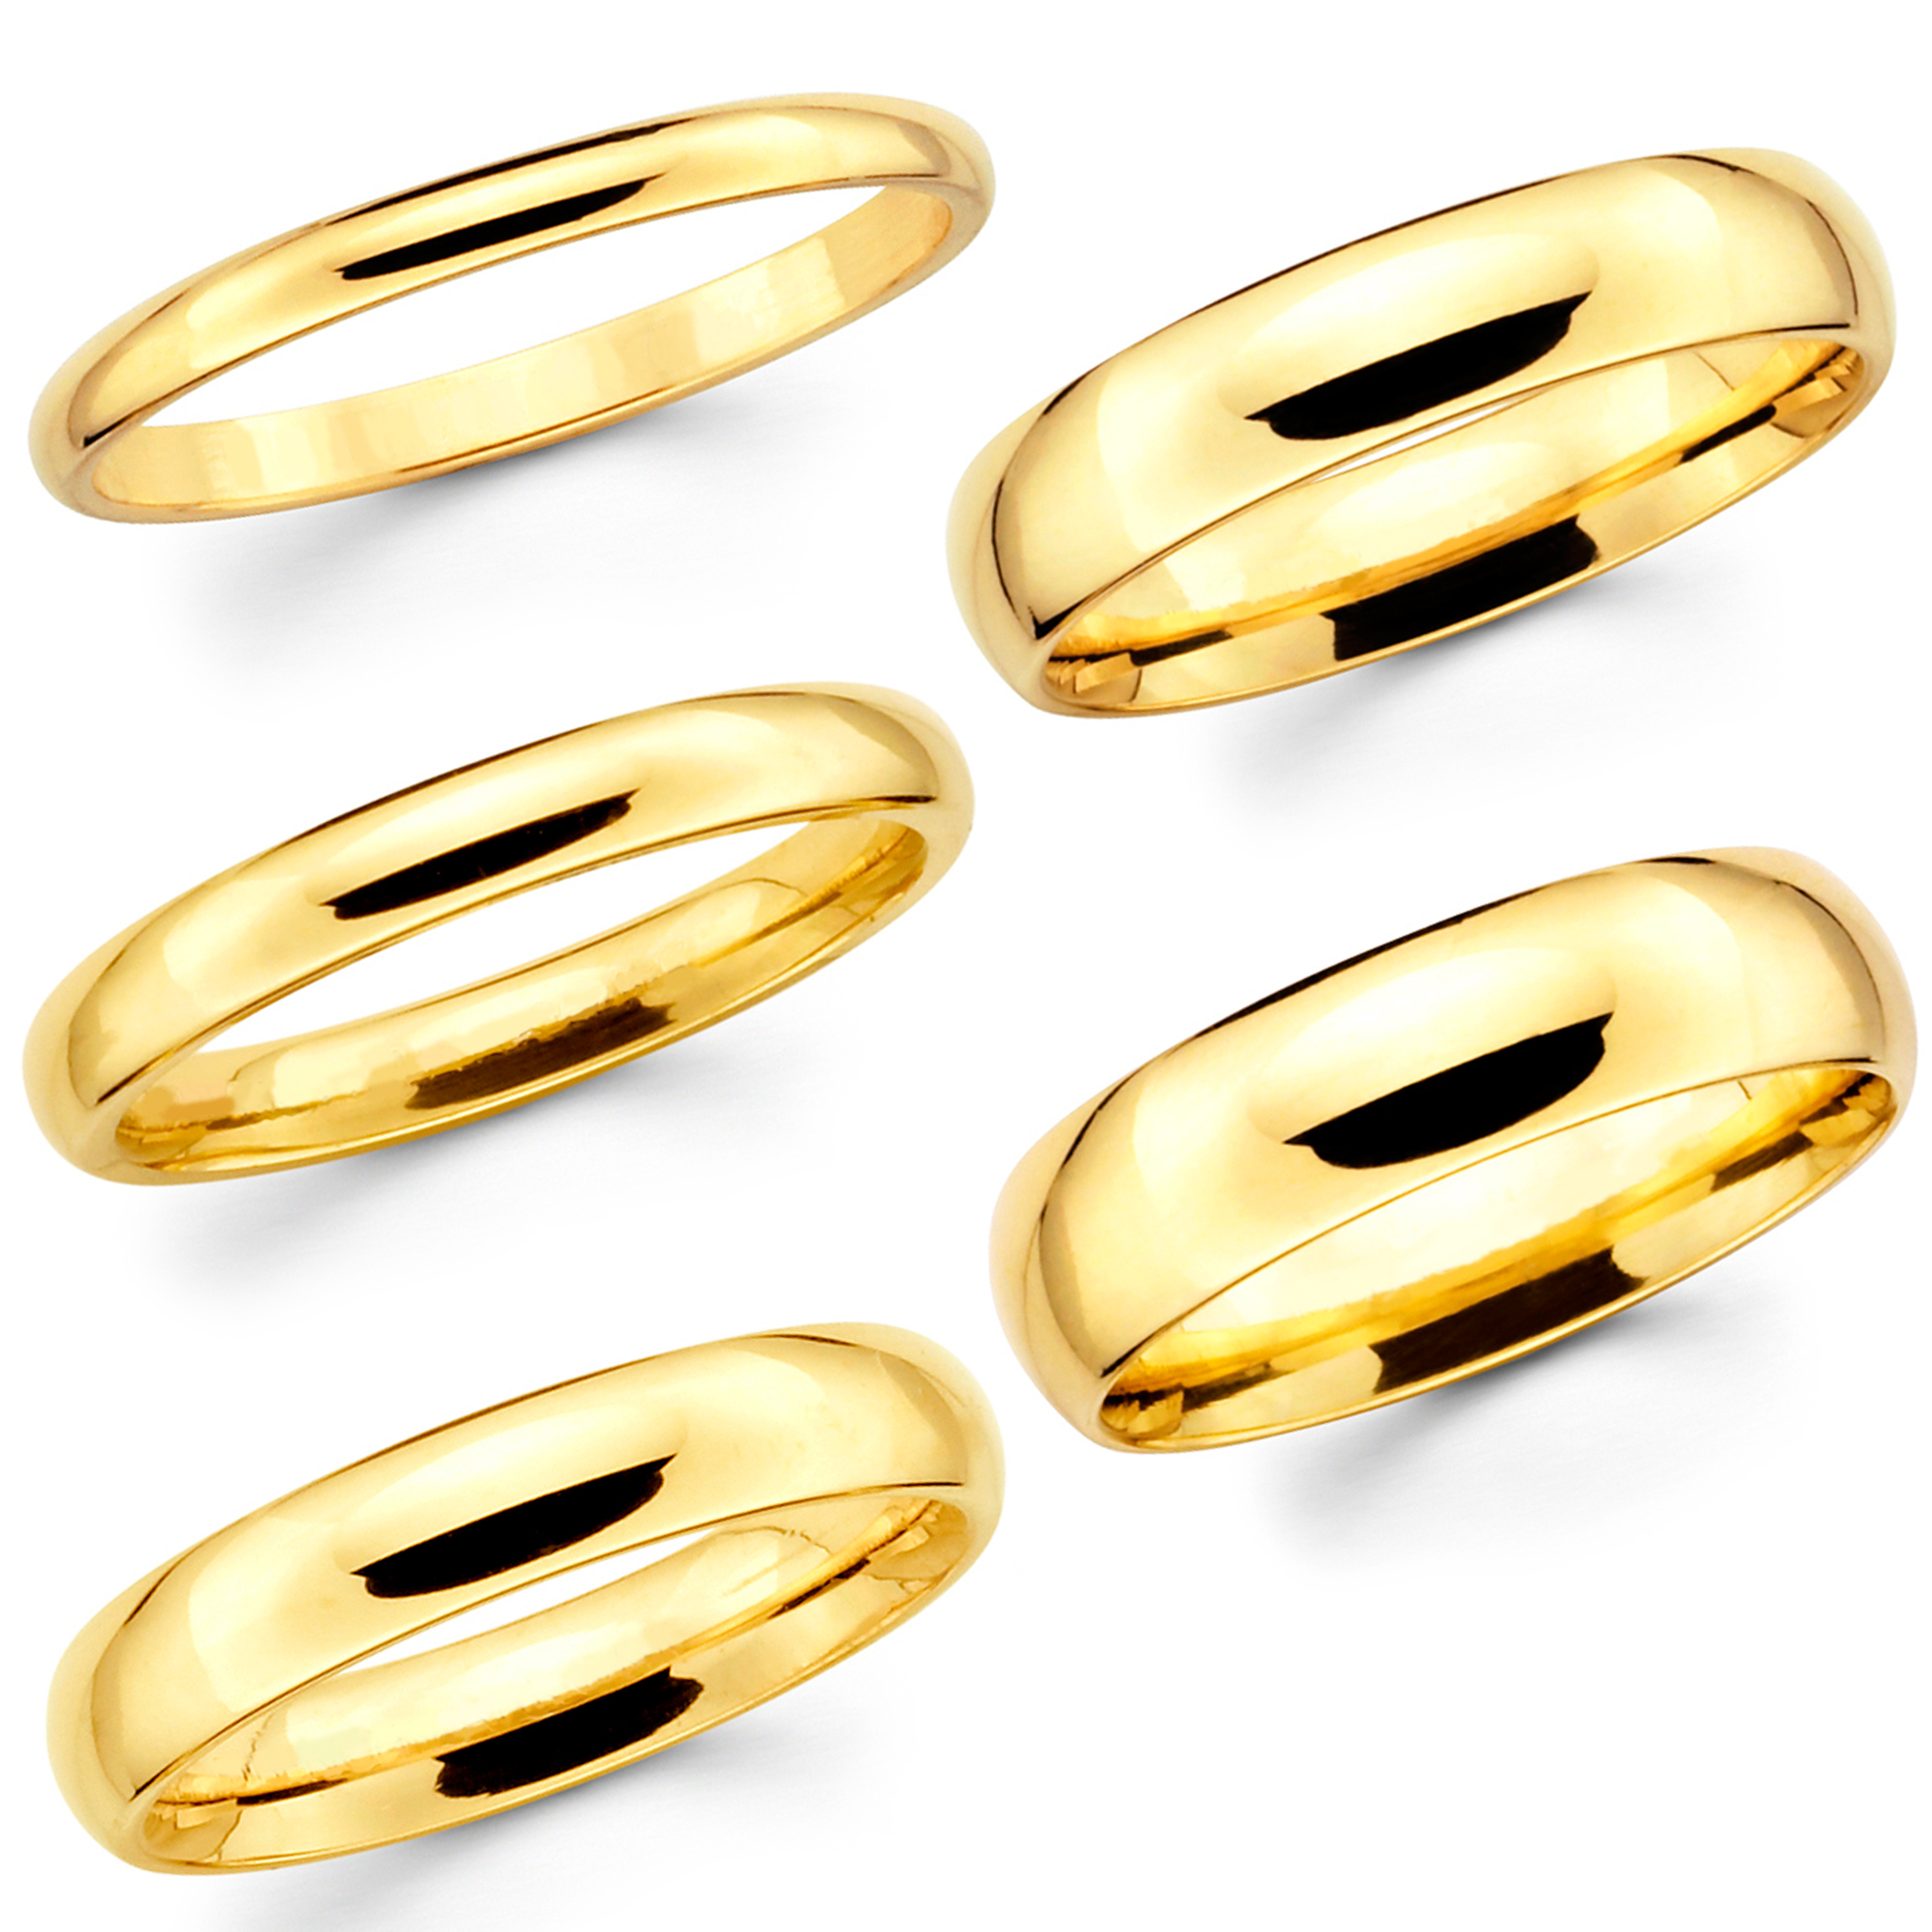 buy bands handmade signet gold by to engraved hand marynolan ring a s mens men custom made order